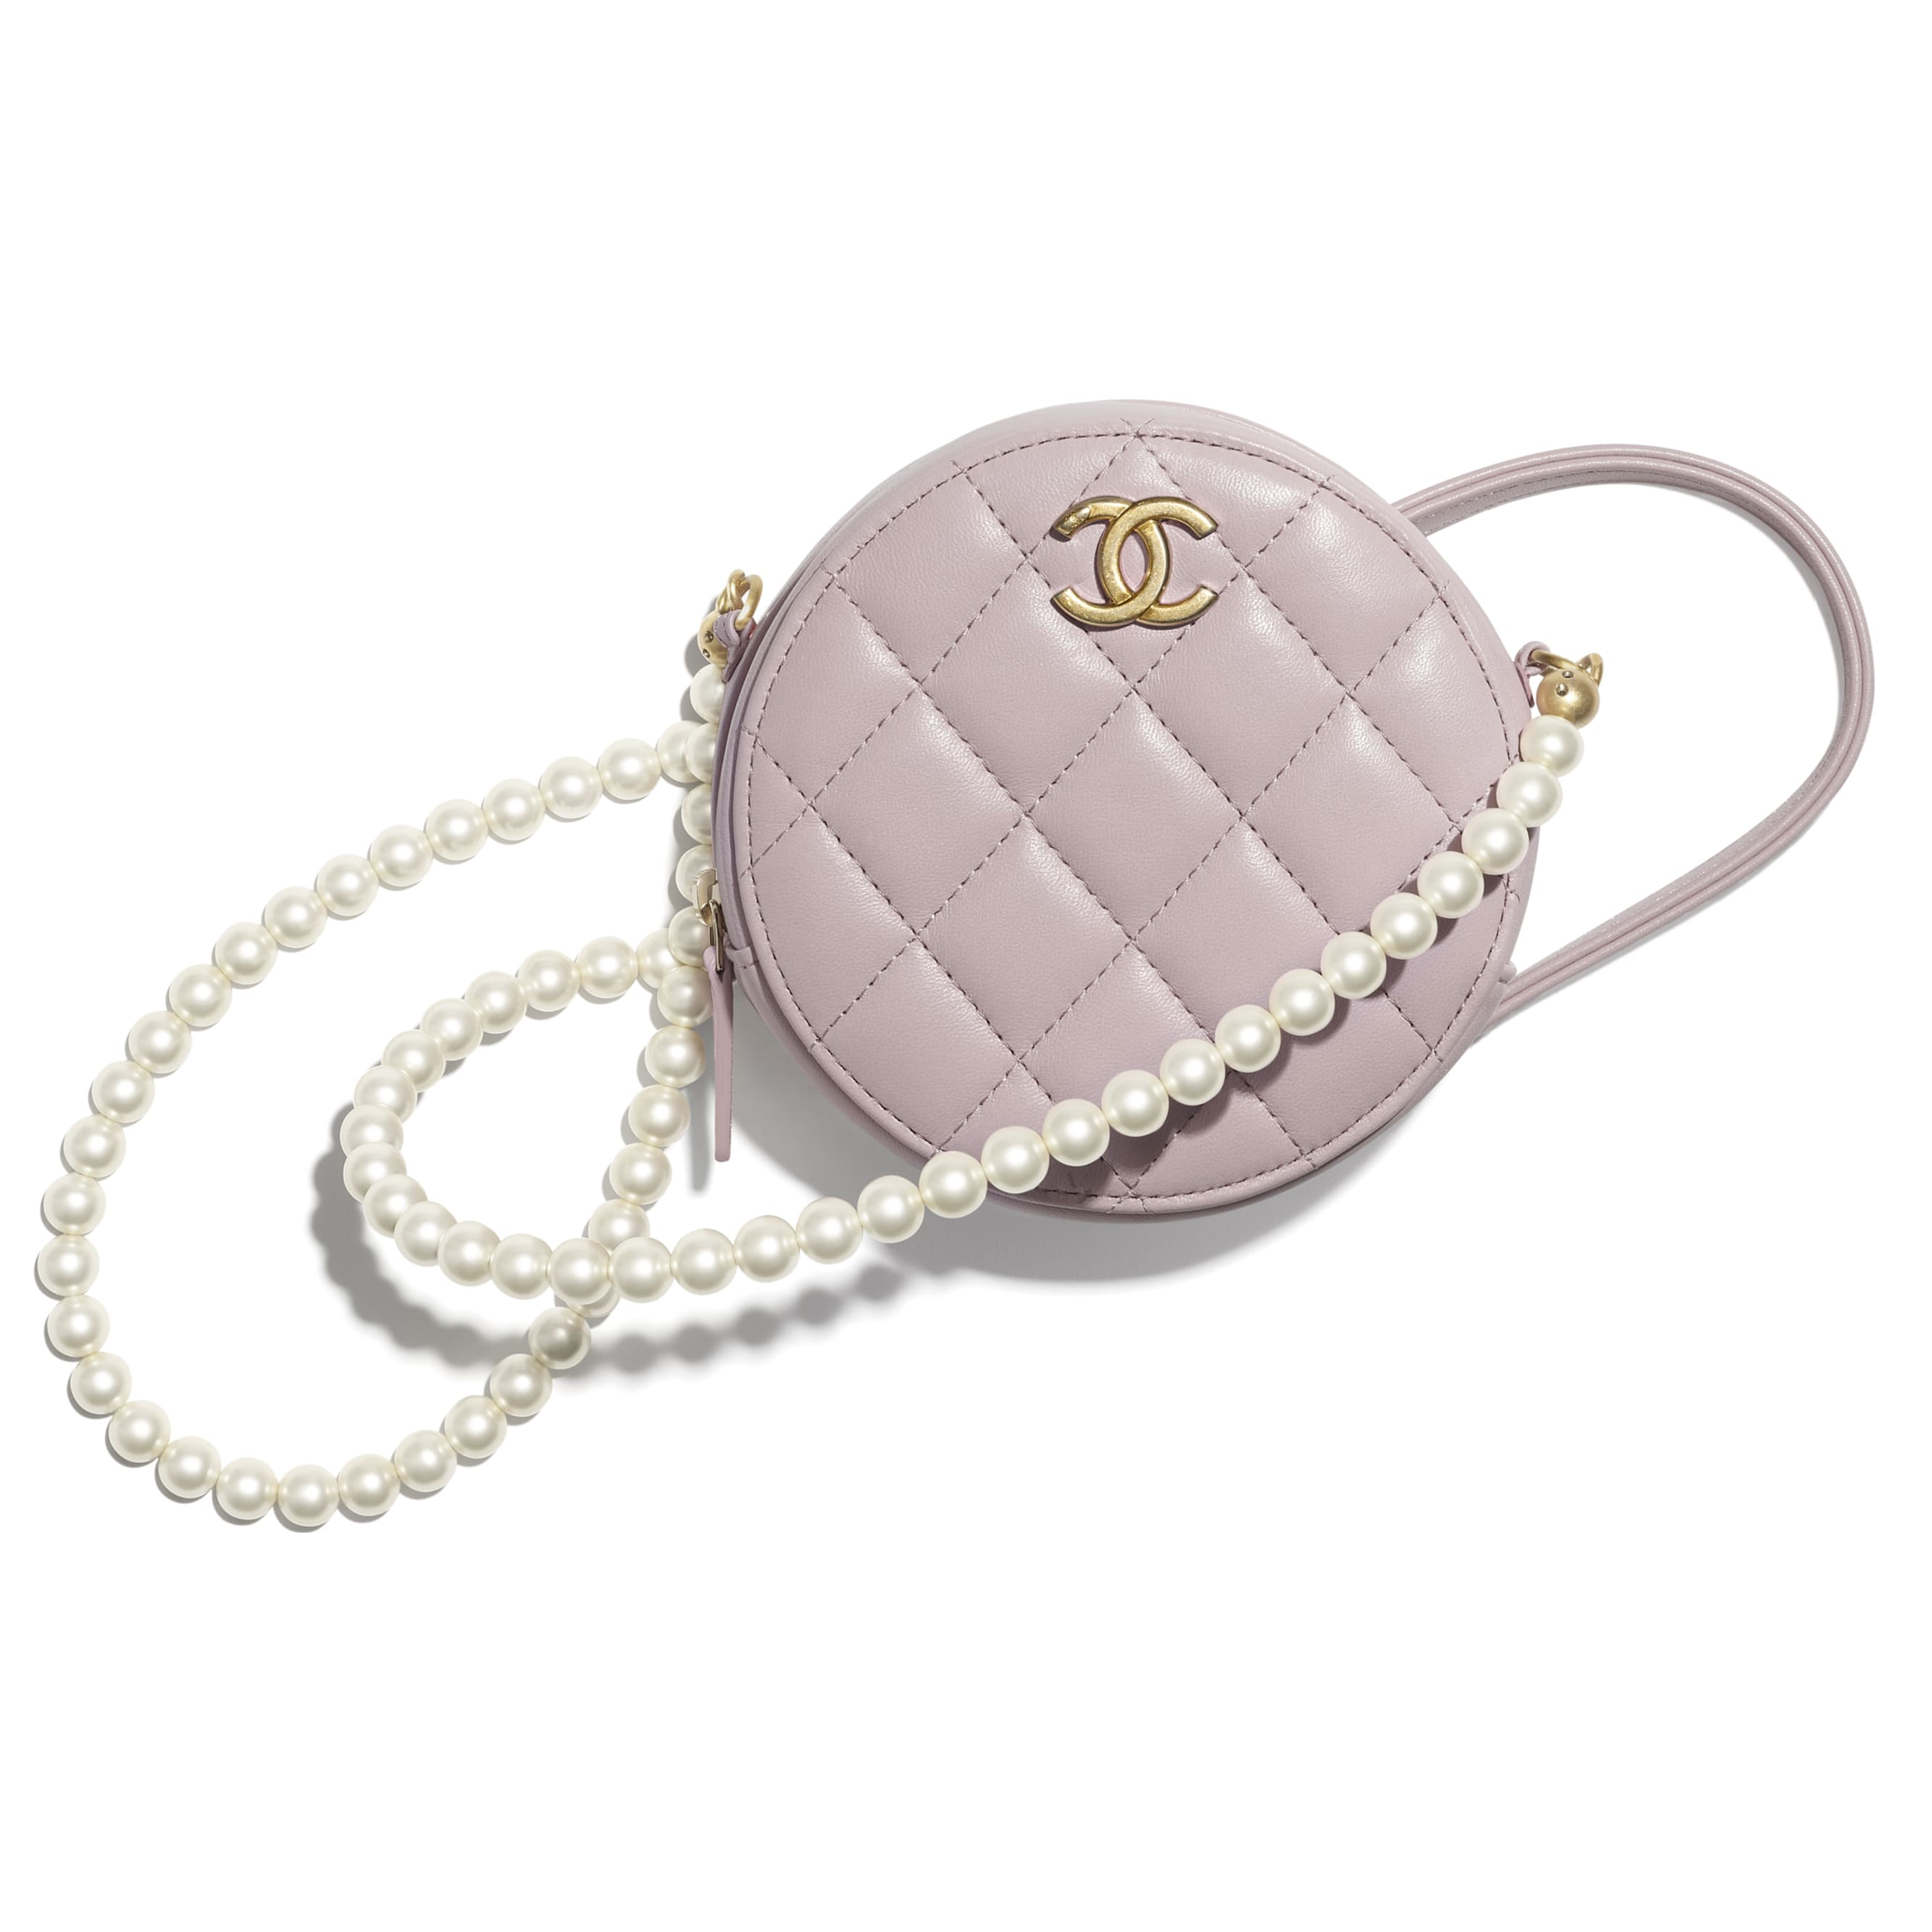 Clutch with Chain - Light Pink - Calfskin, Imitation Pearls & Gold-Tone Metal - CHANEL - Default view - see standard sized version